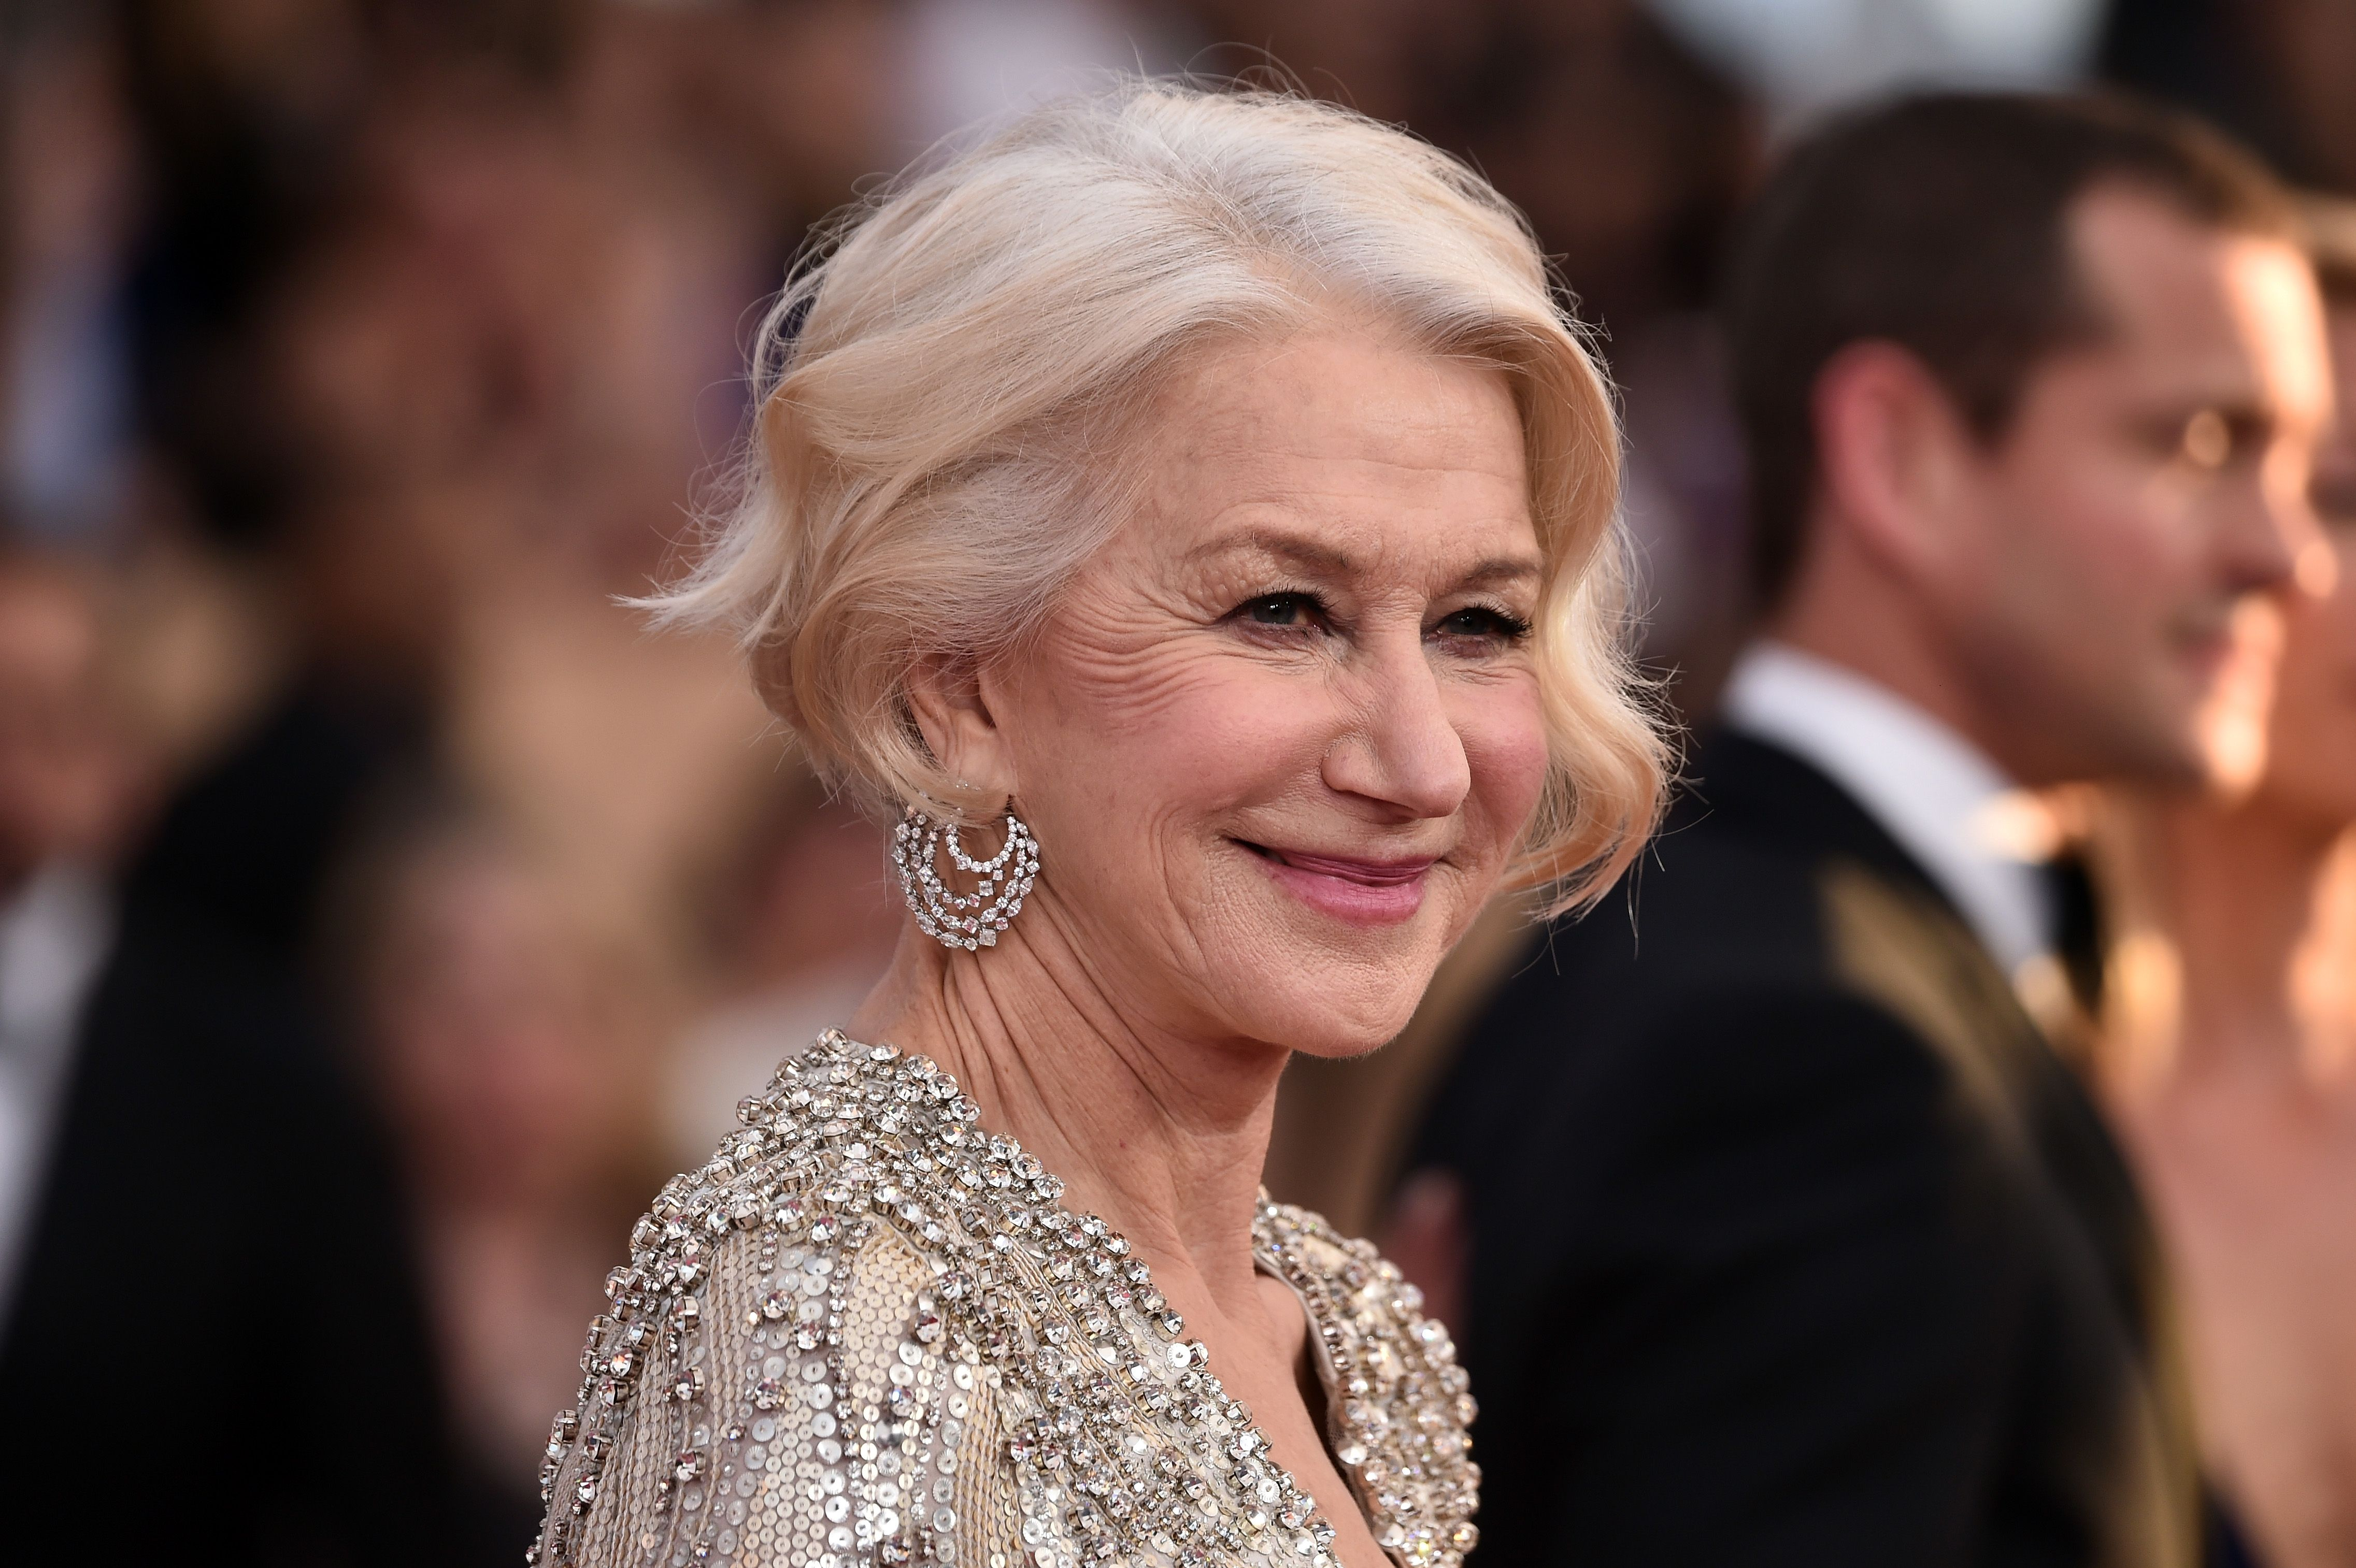 """Helen Mirren on ageing """"disgracefully"""", quarantine make-up and staying fit"""